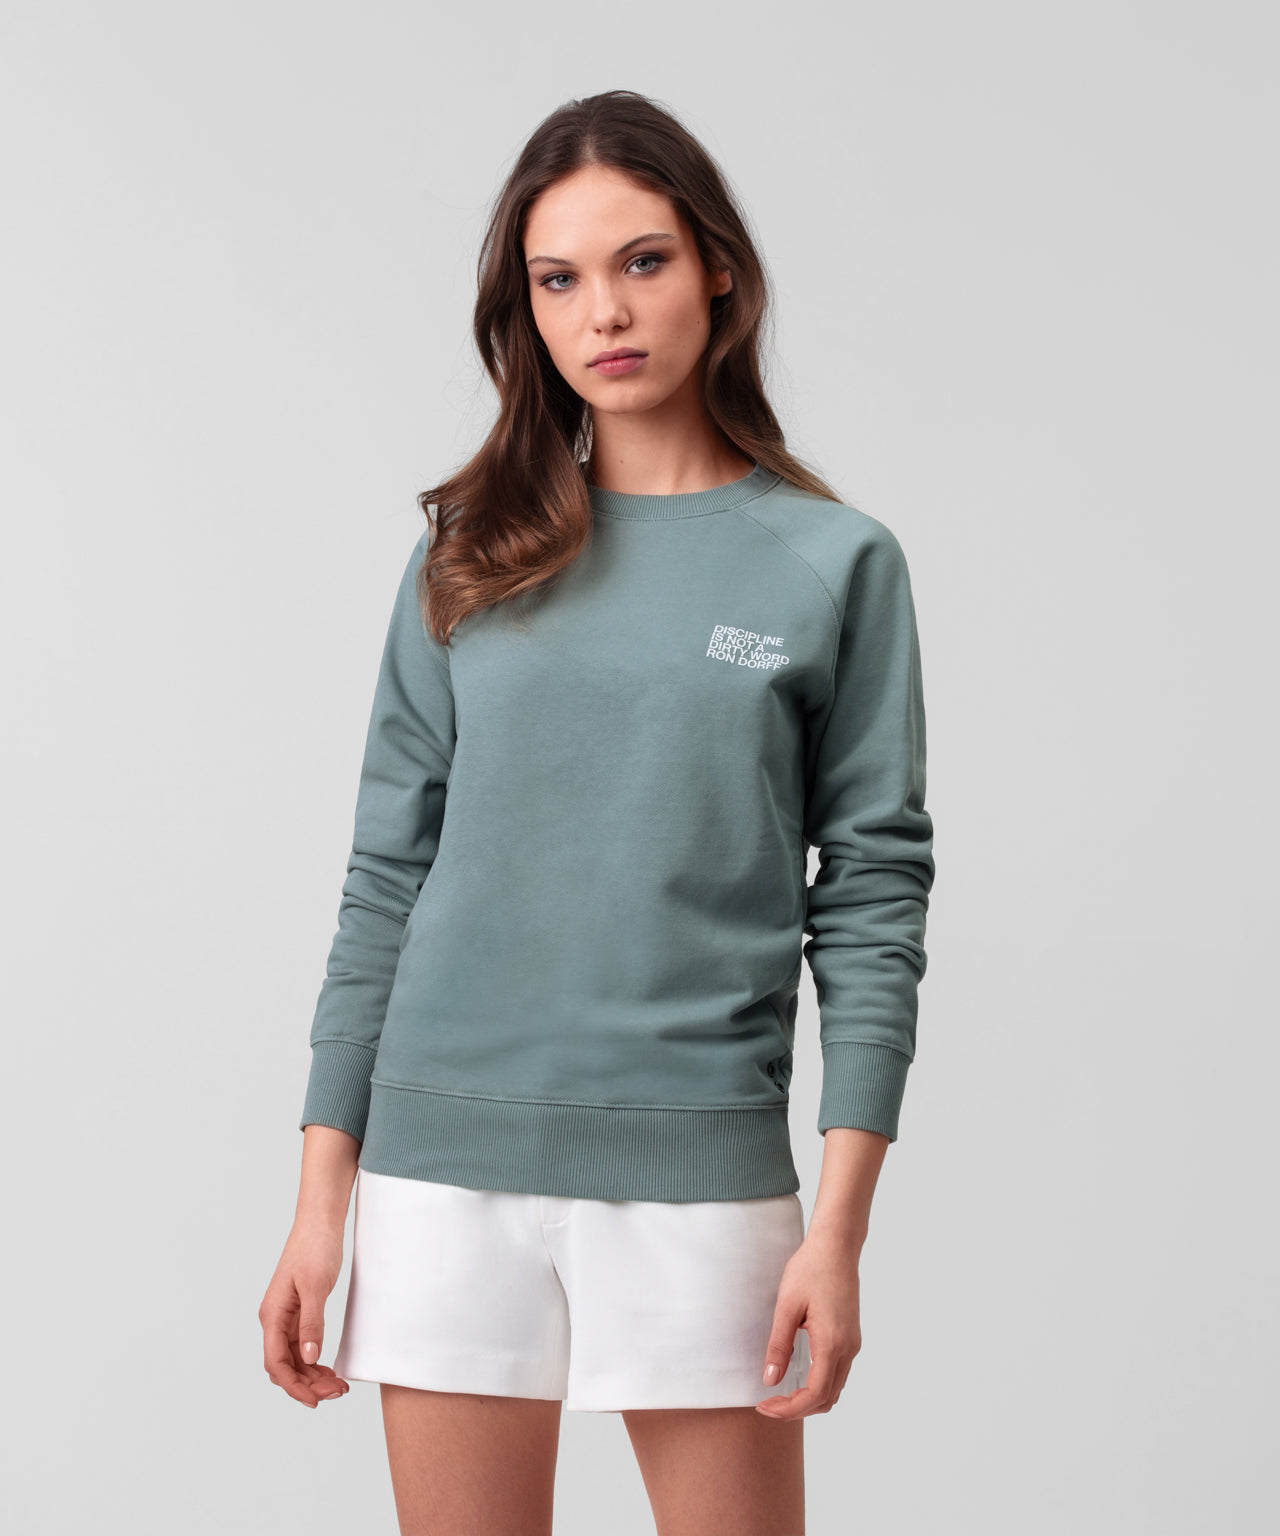 Sweatshirt DISCIPLINE Small Print His For Her - stormy sea